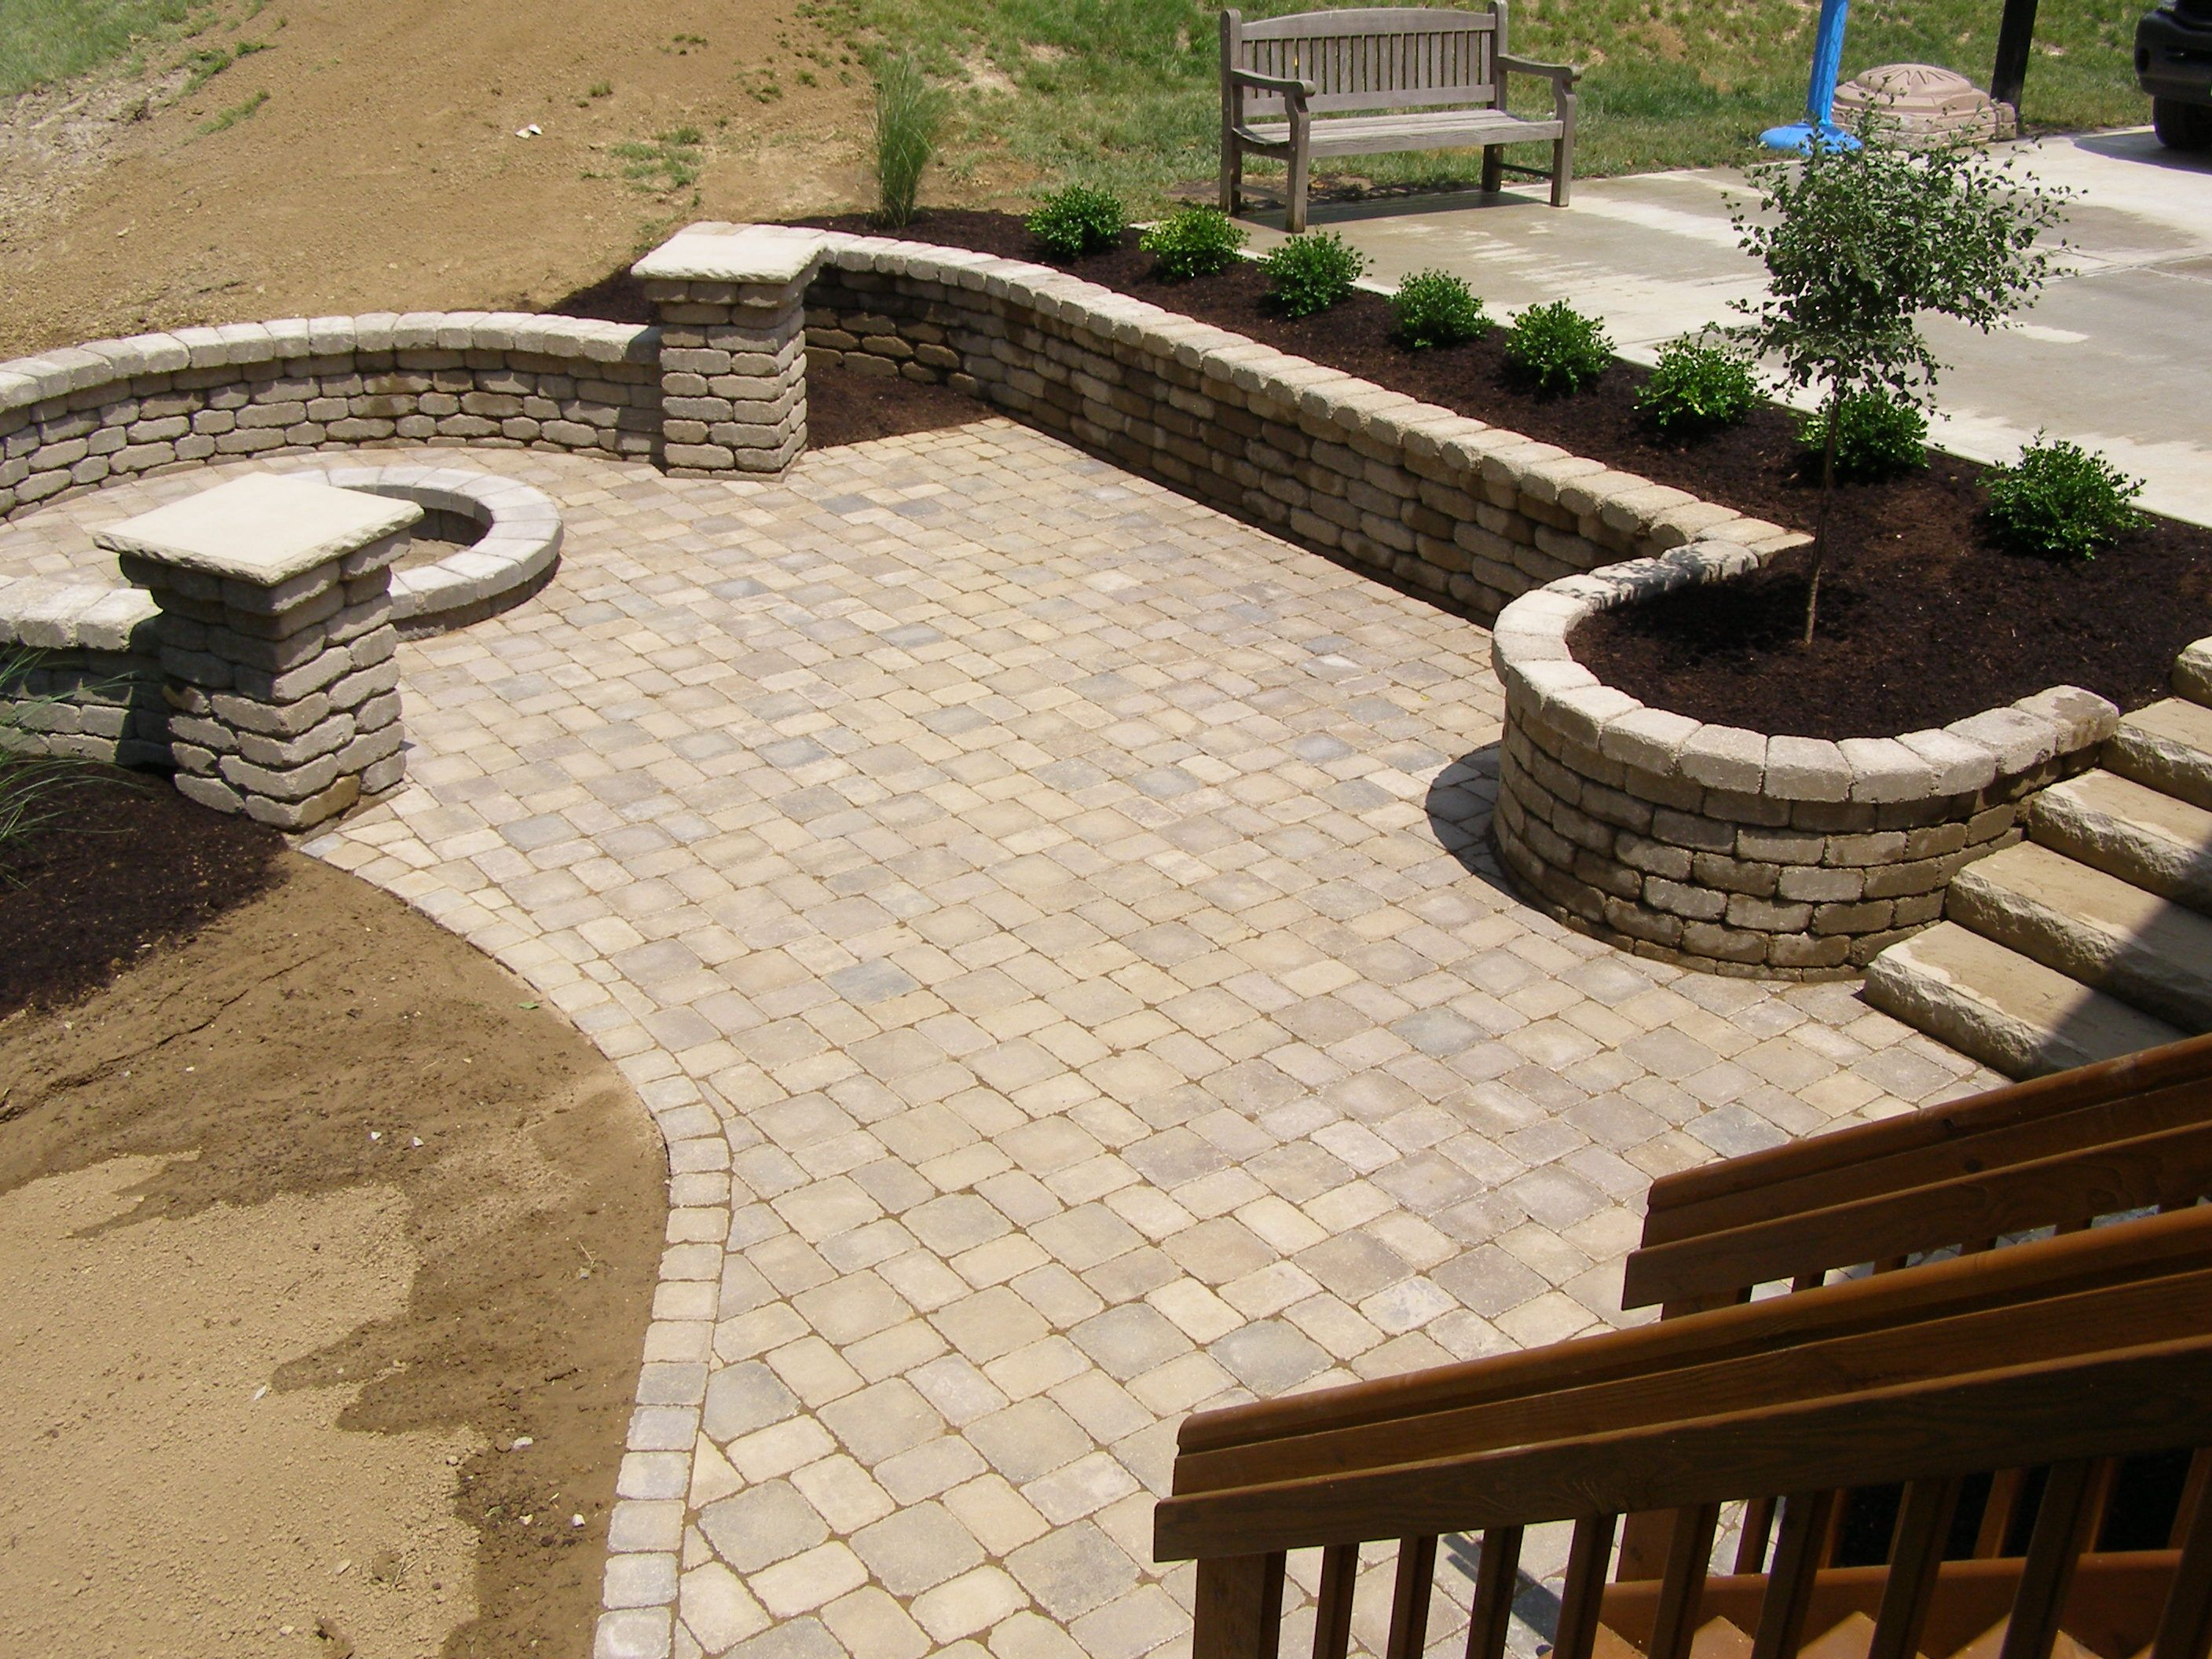 Flagstone Pavers Design For Outdoor Flooring Ideas: Flagstone Pavers With  Round Stacked Stone Plus Plants